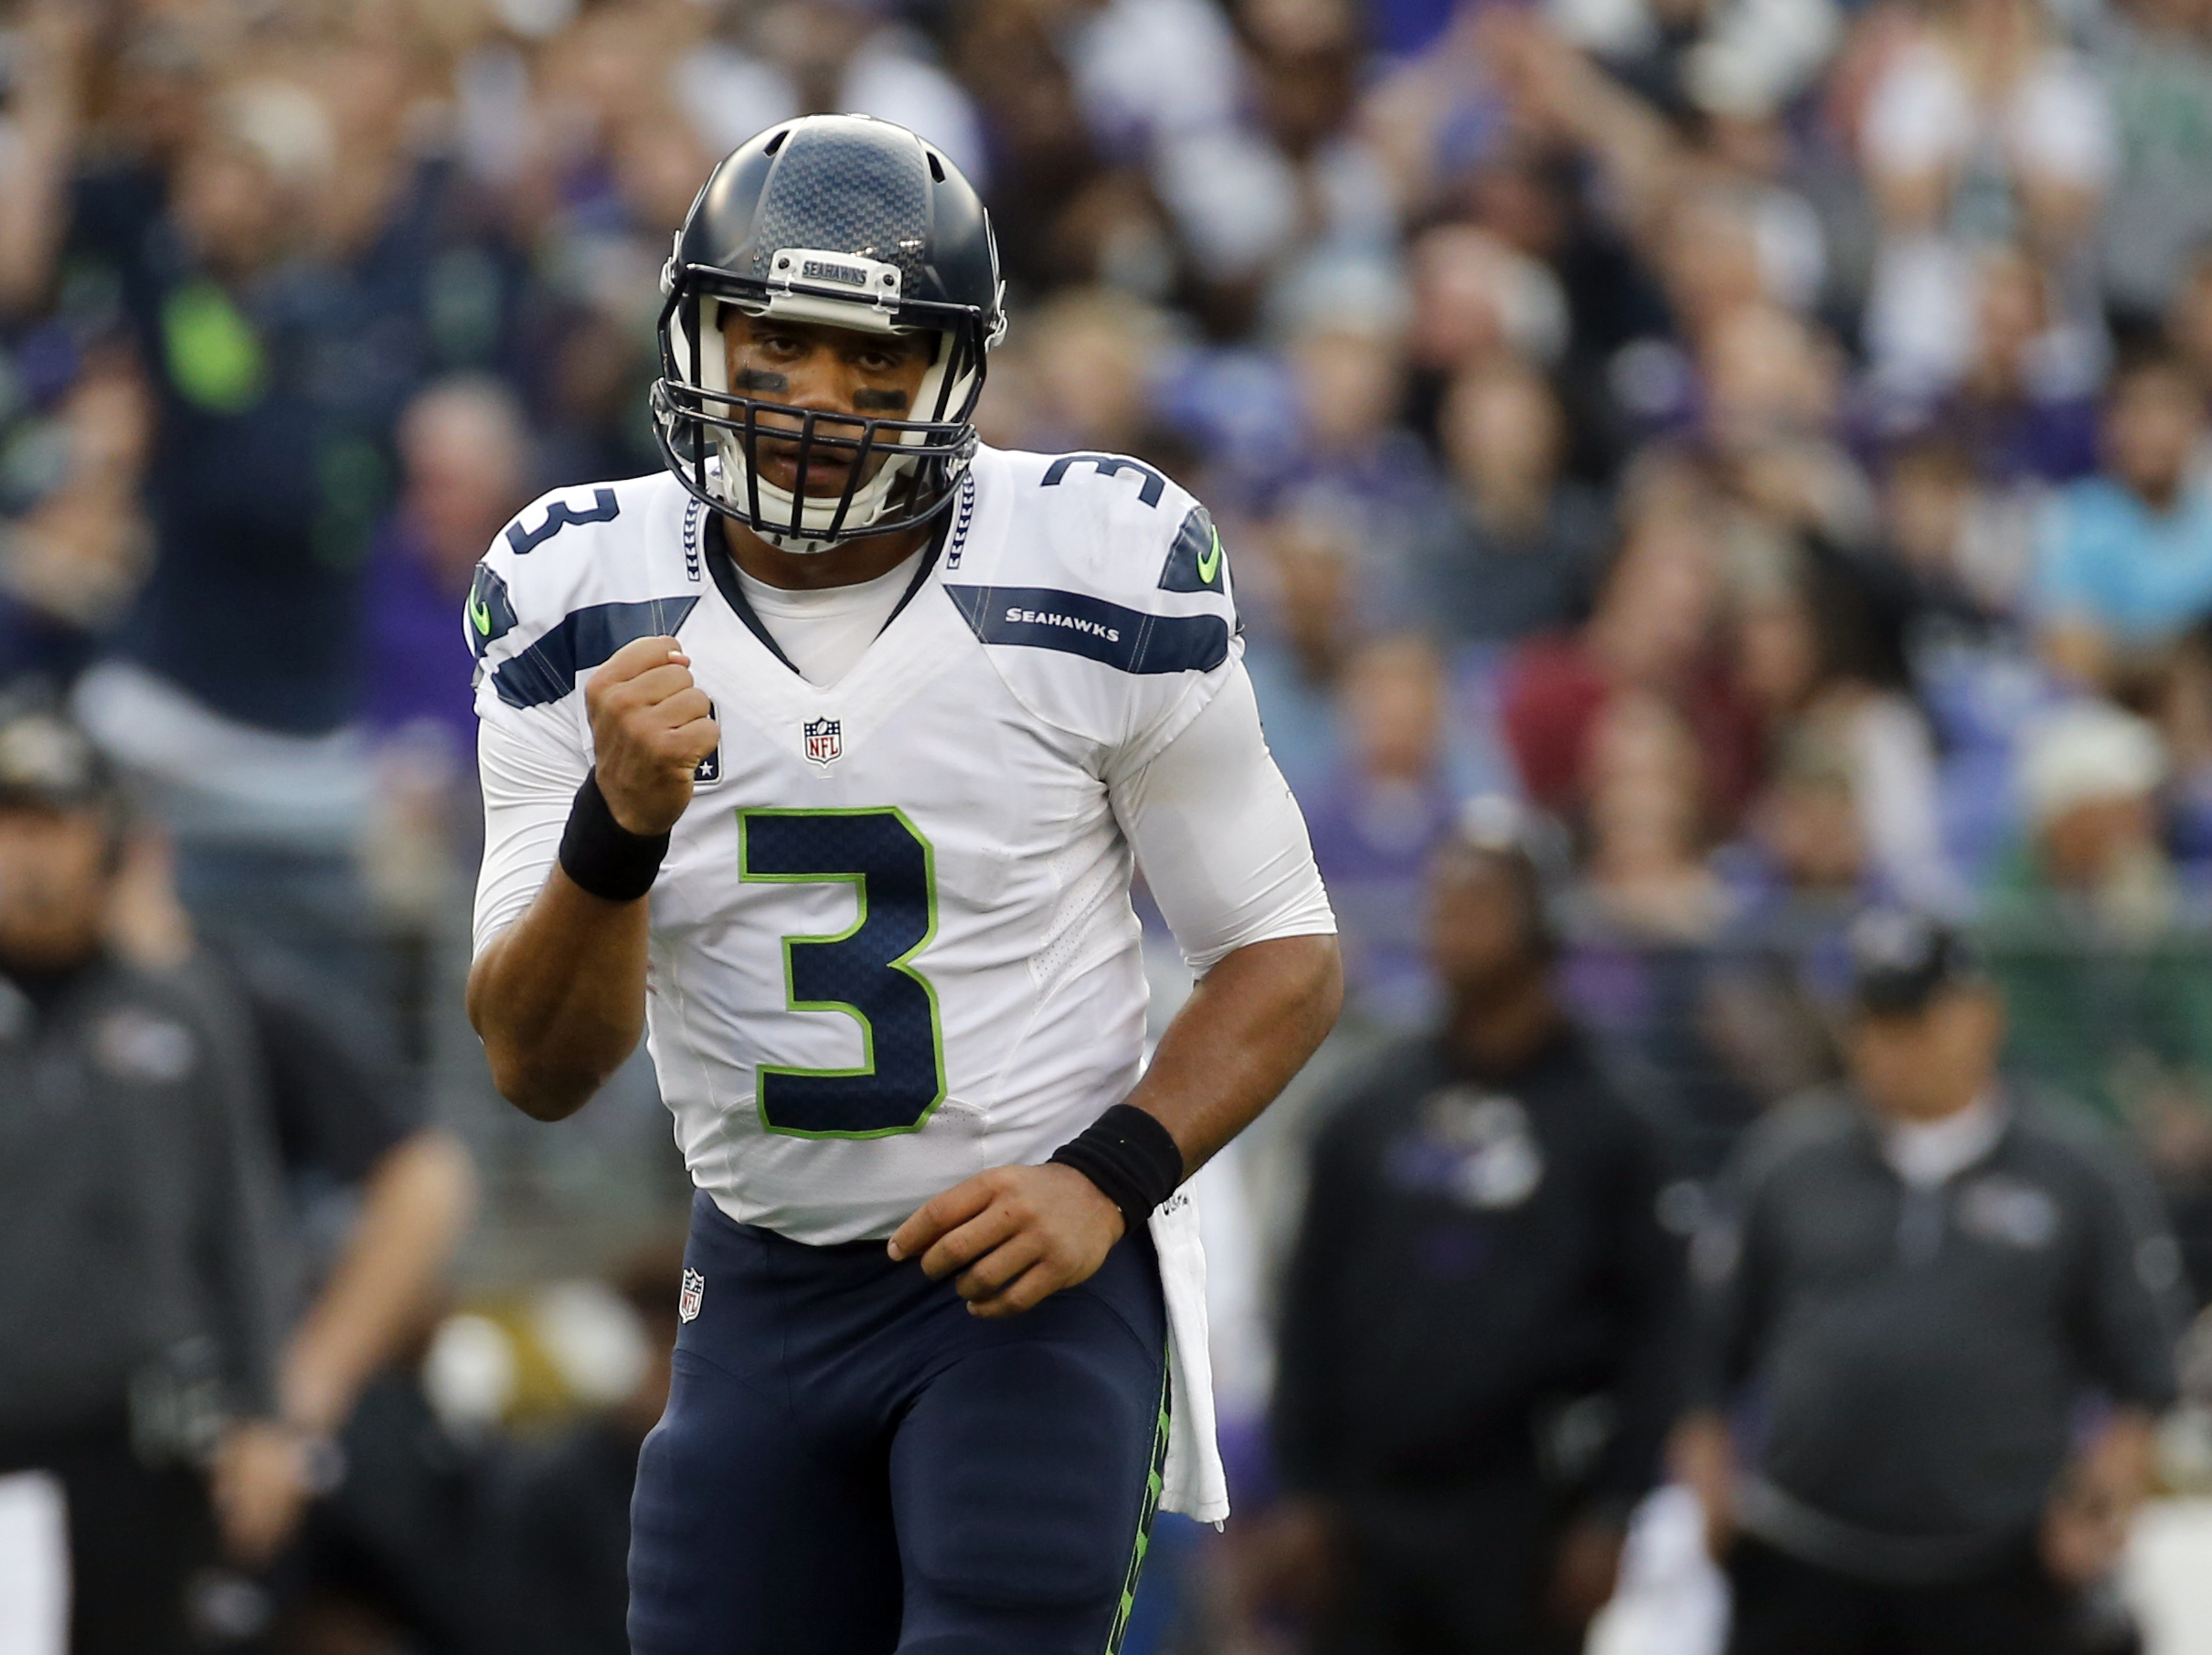 Seattle Seahawks quarterback Russell Wilson (3) celebrates a touchdown pass to Seahawks wide receiver Doug Baldwin during the second half an NFL football game against the Baltimore Ravens, Sunday, Dec. 13, 2015, in Baltimore. (AP Photo/Patrick Semansky)